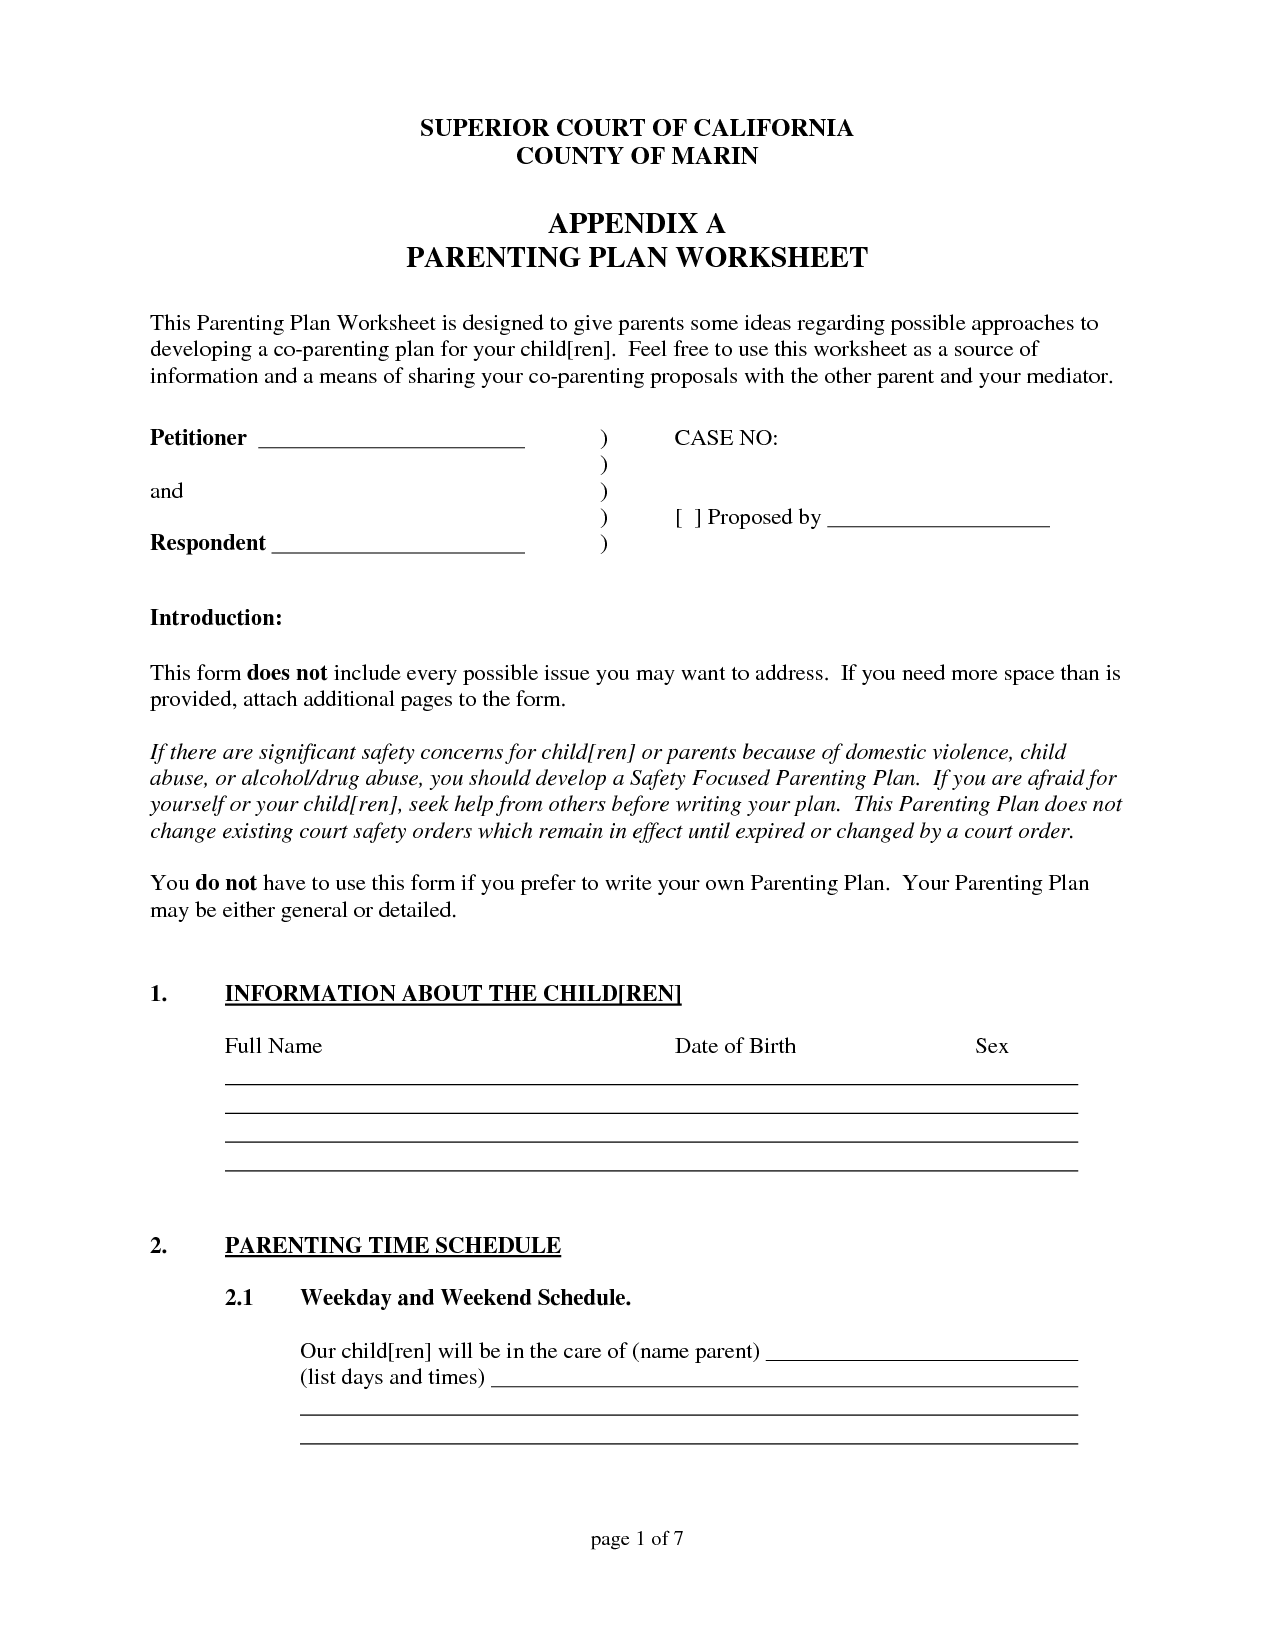 Co Parenting Difficult Worksheet